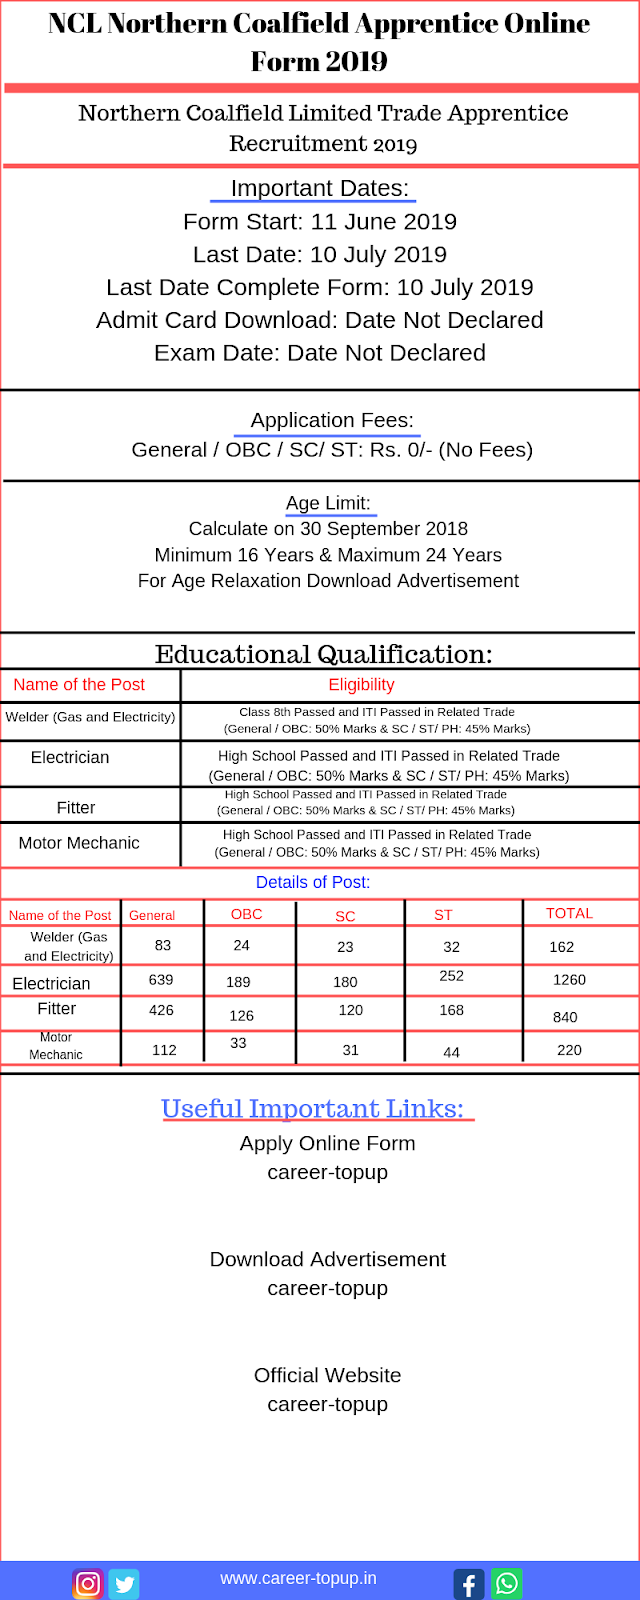 NCL Northern Coalfield Apprentice Online  Application Form 2019